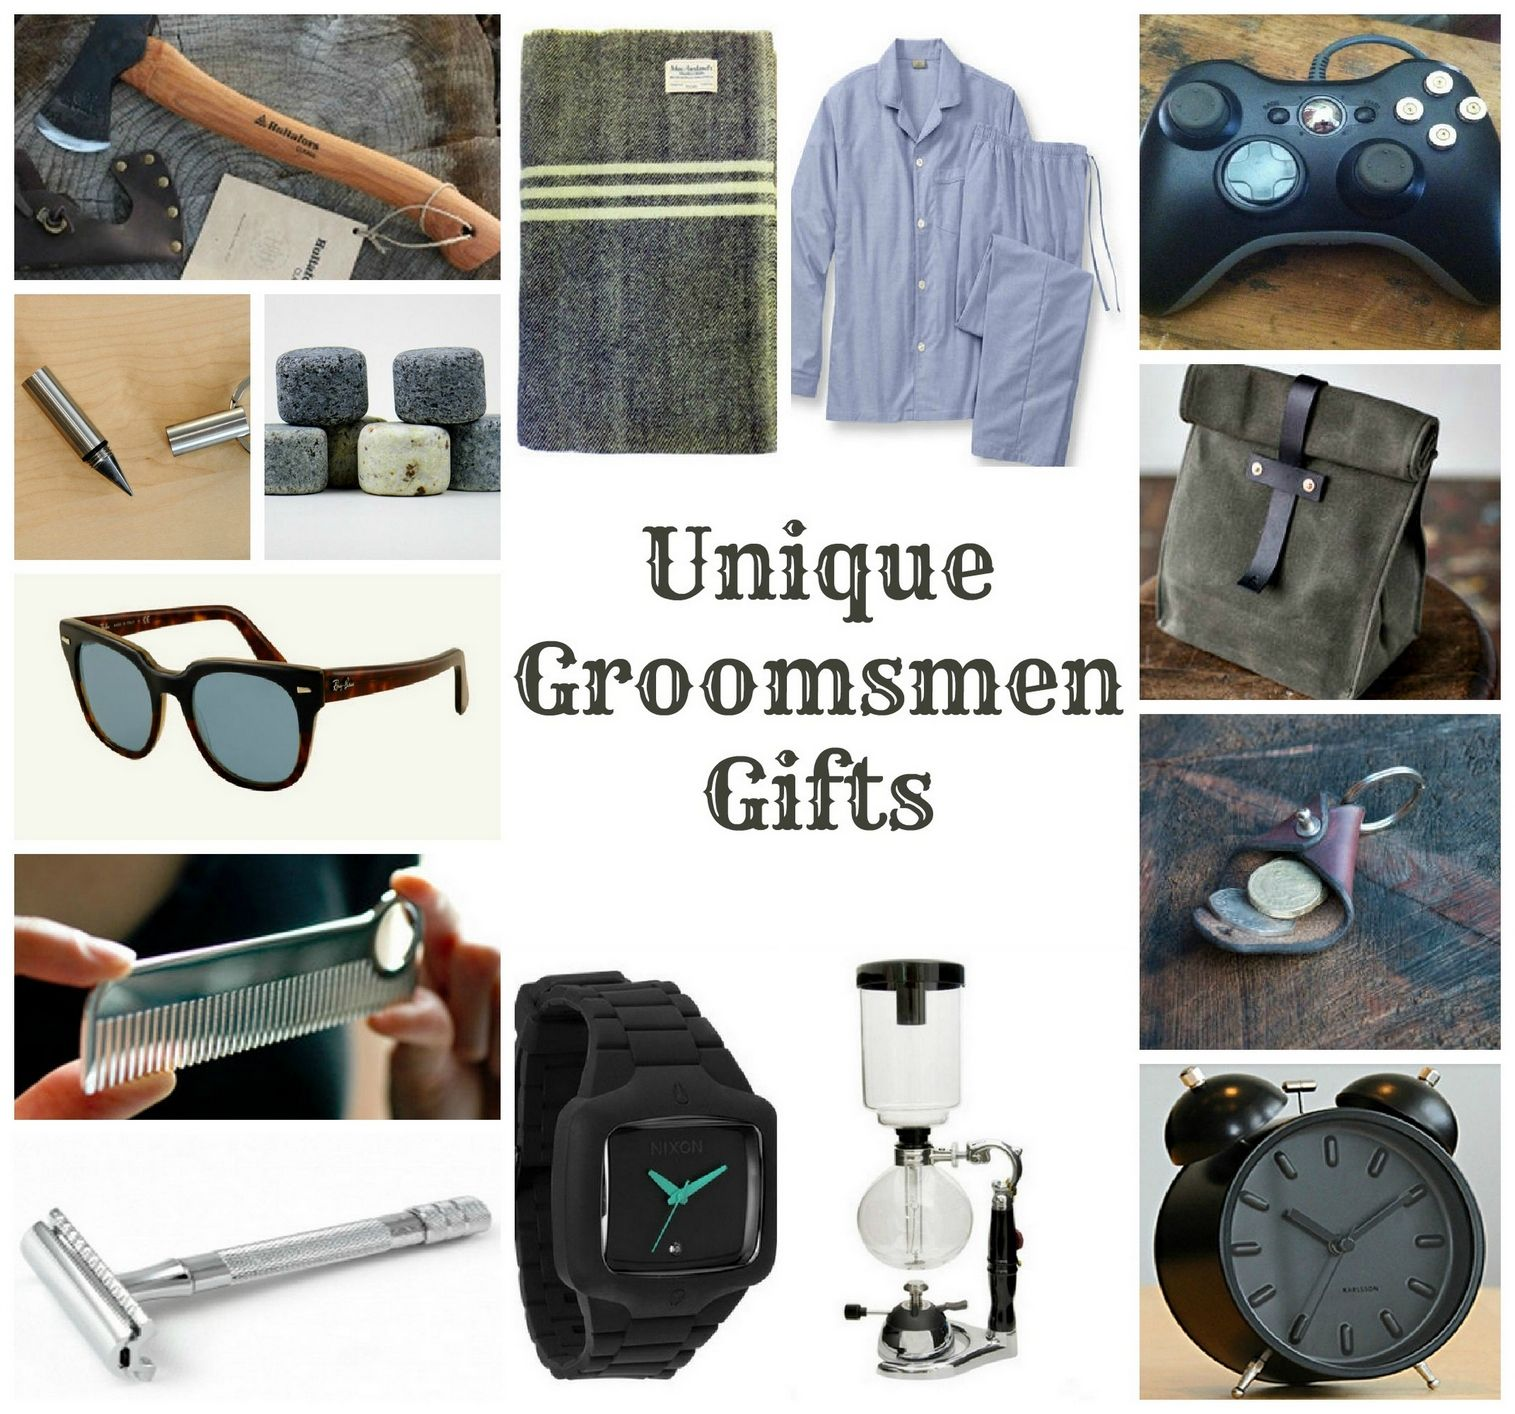 Unique Groomsmen Gifts Ideas | Bridal parties and Weddings